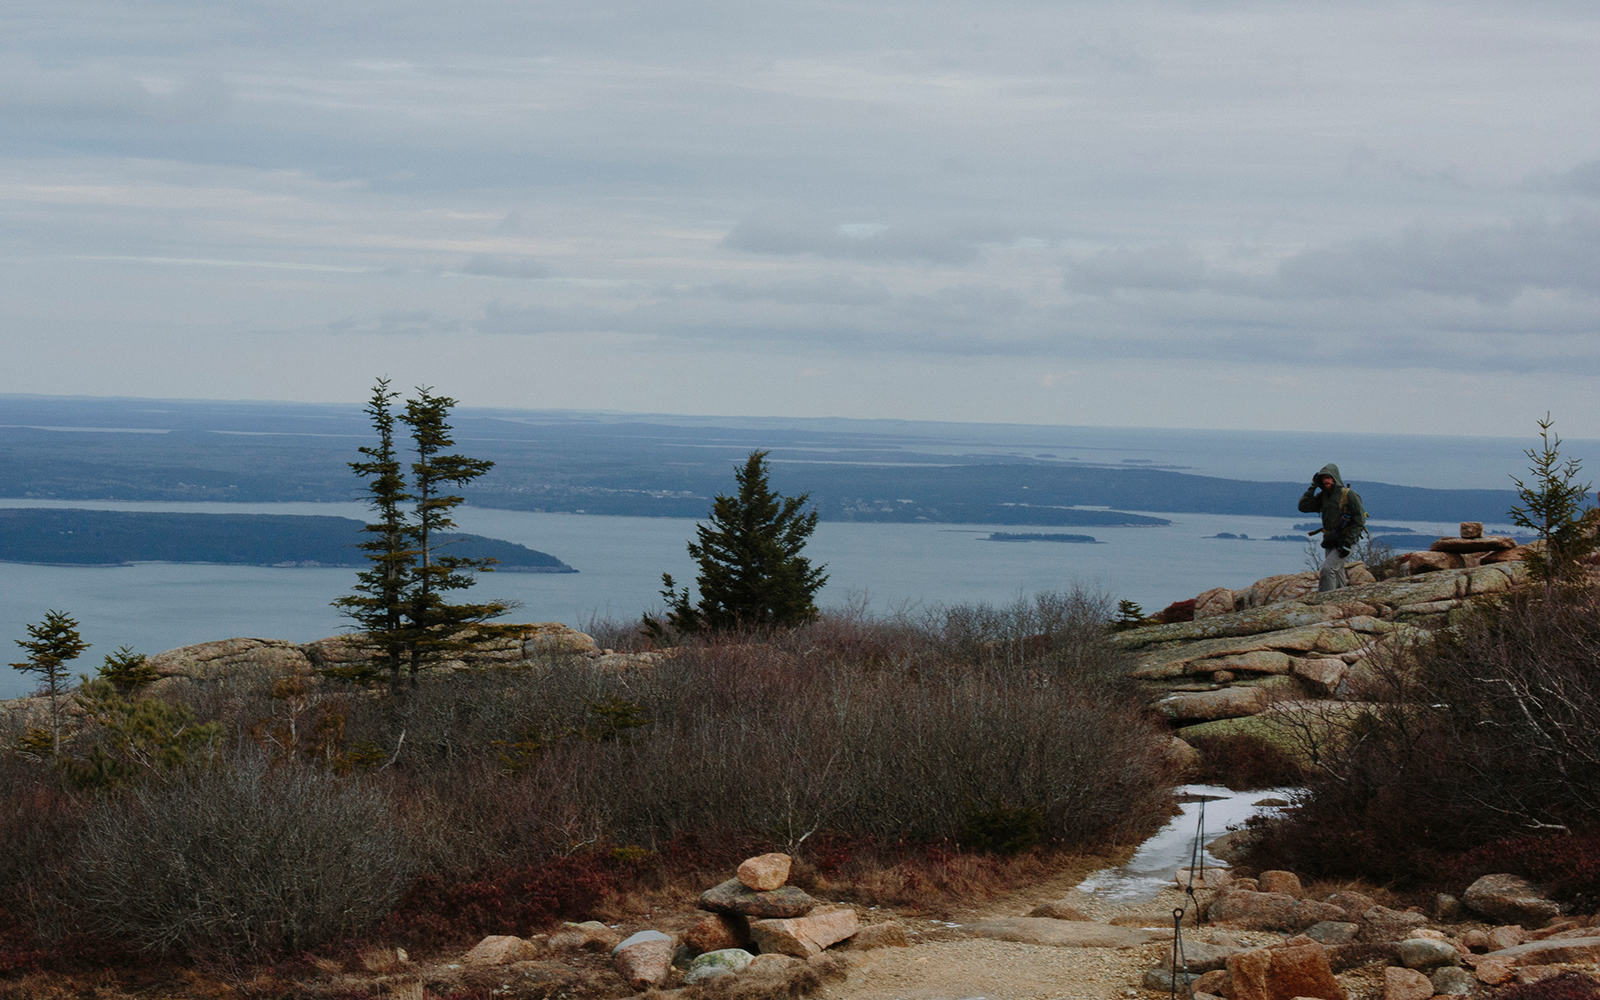 Best U.S. National Park Views: Cadillac Mountain, Acadia National Park